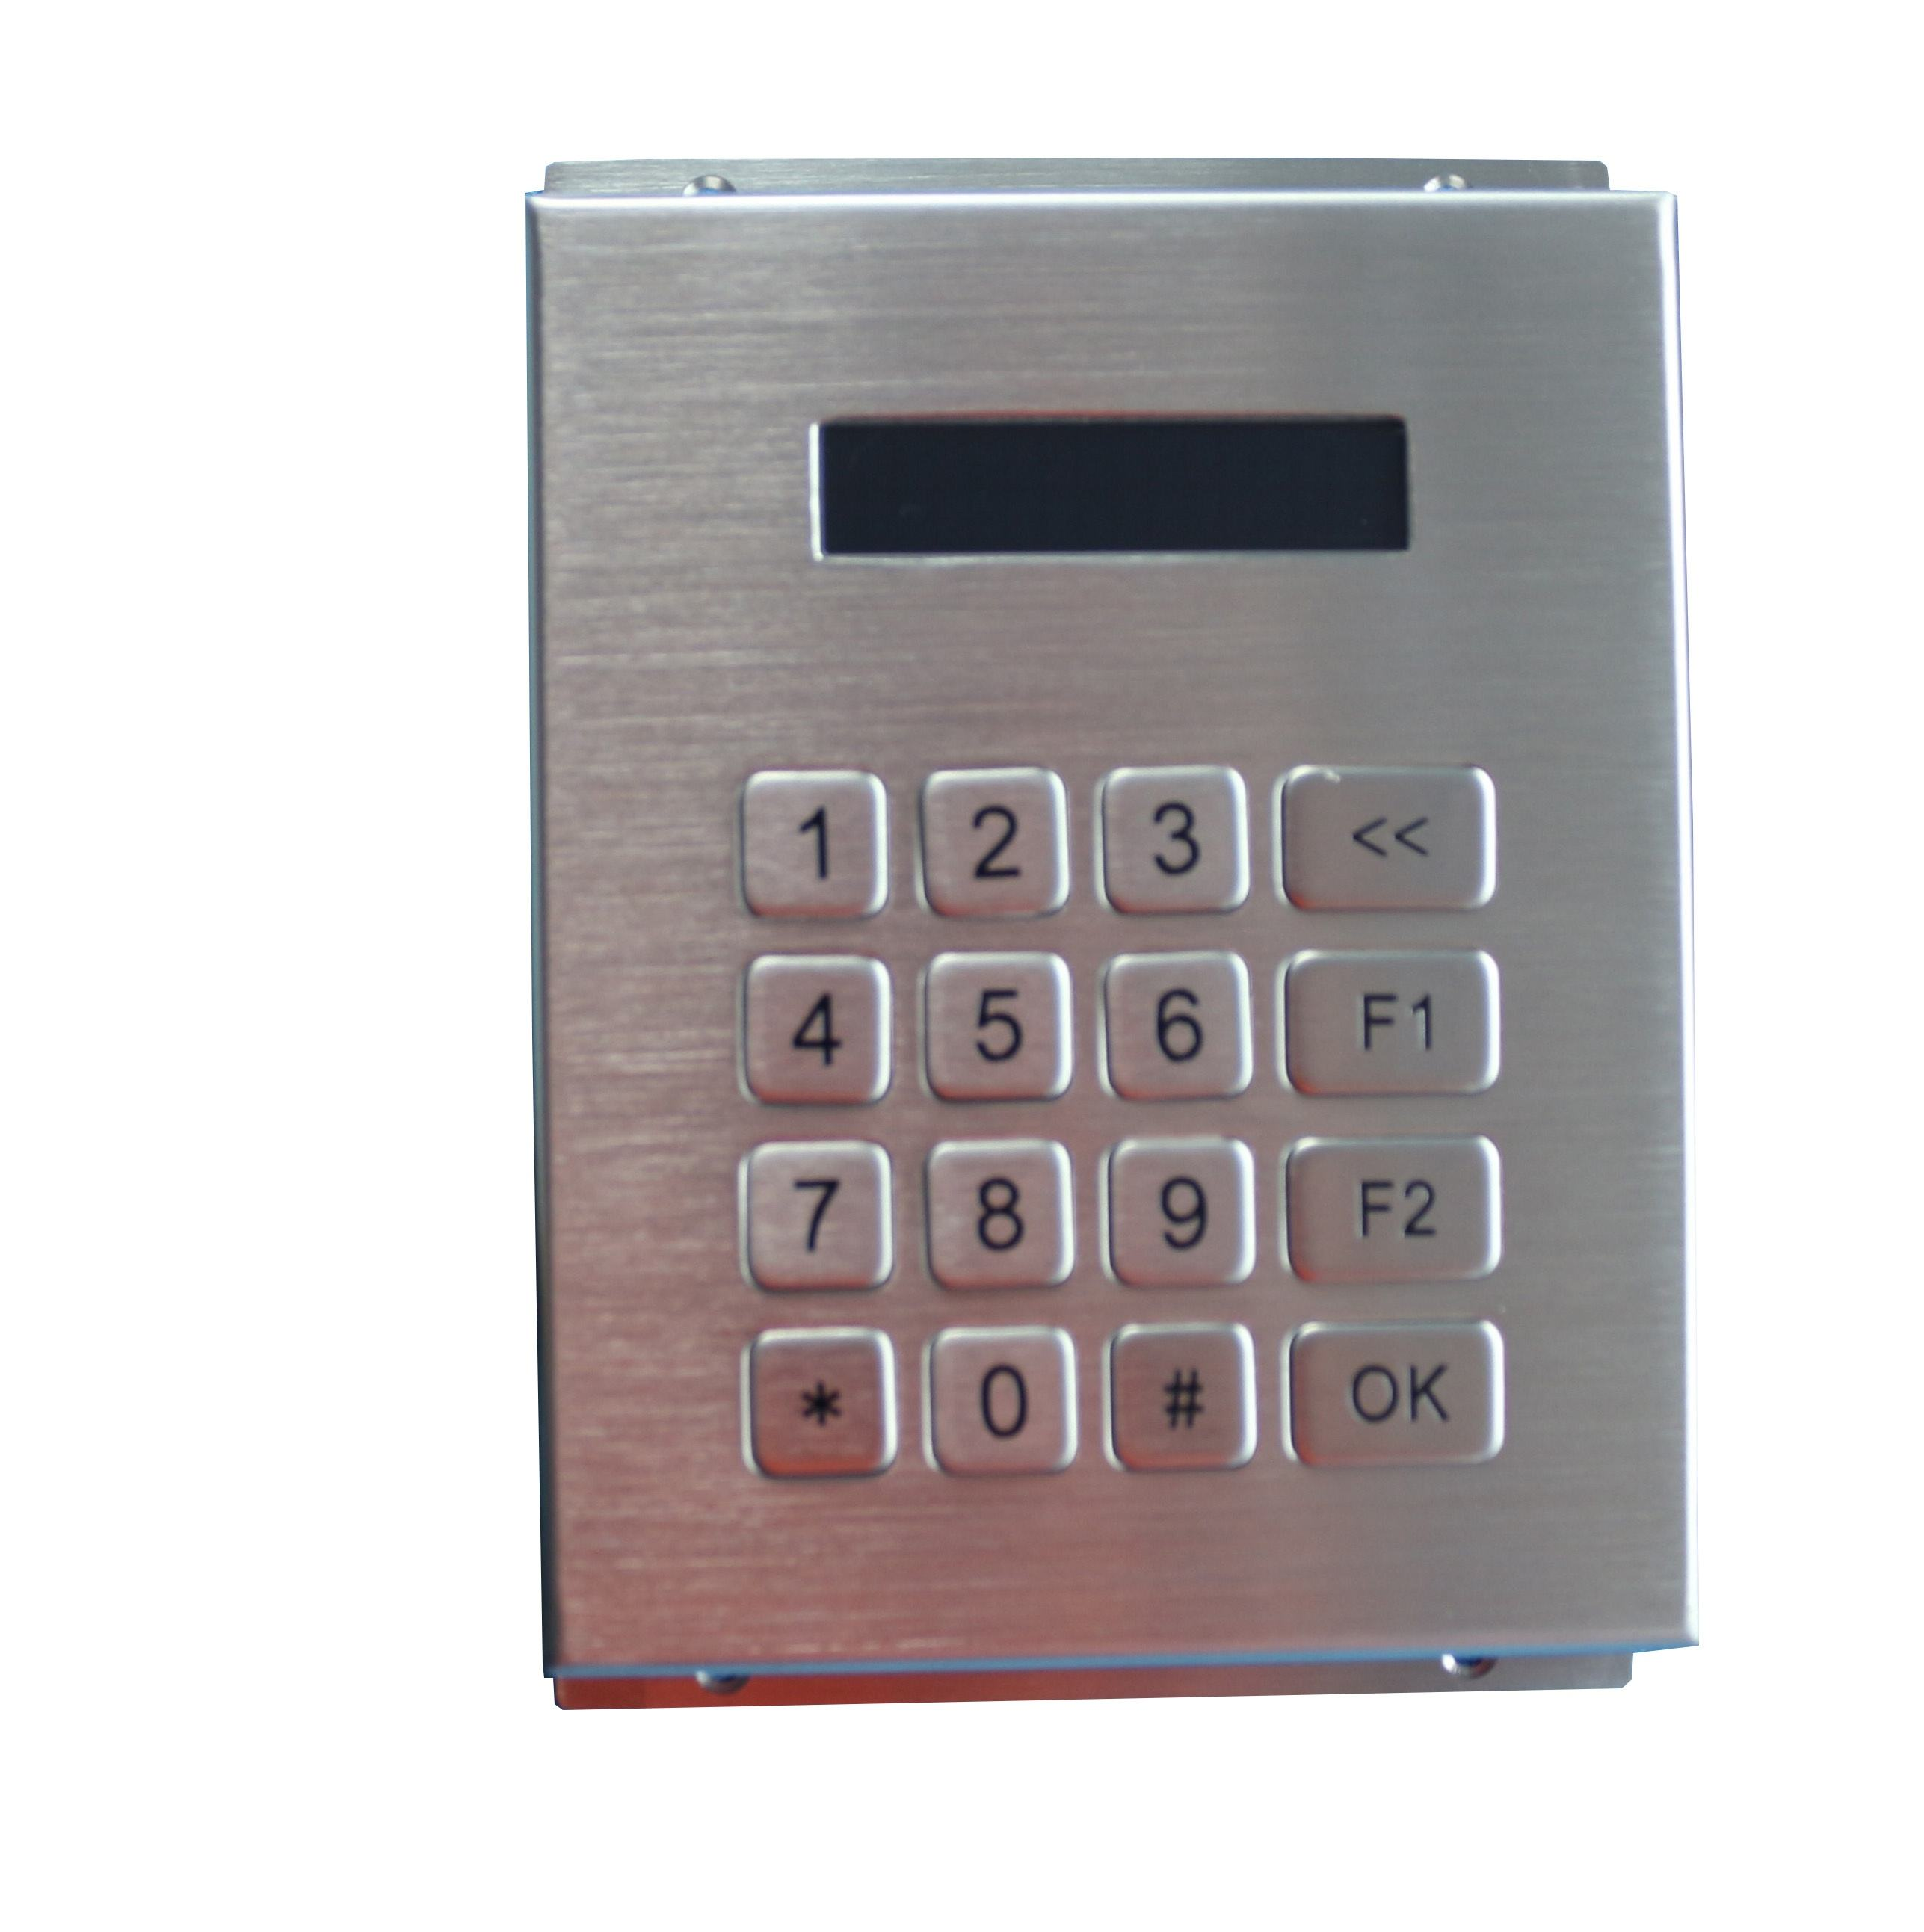 waterproof mini 4x4 RS232 numeric metal keypads with LCD display